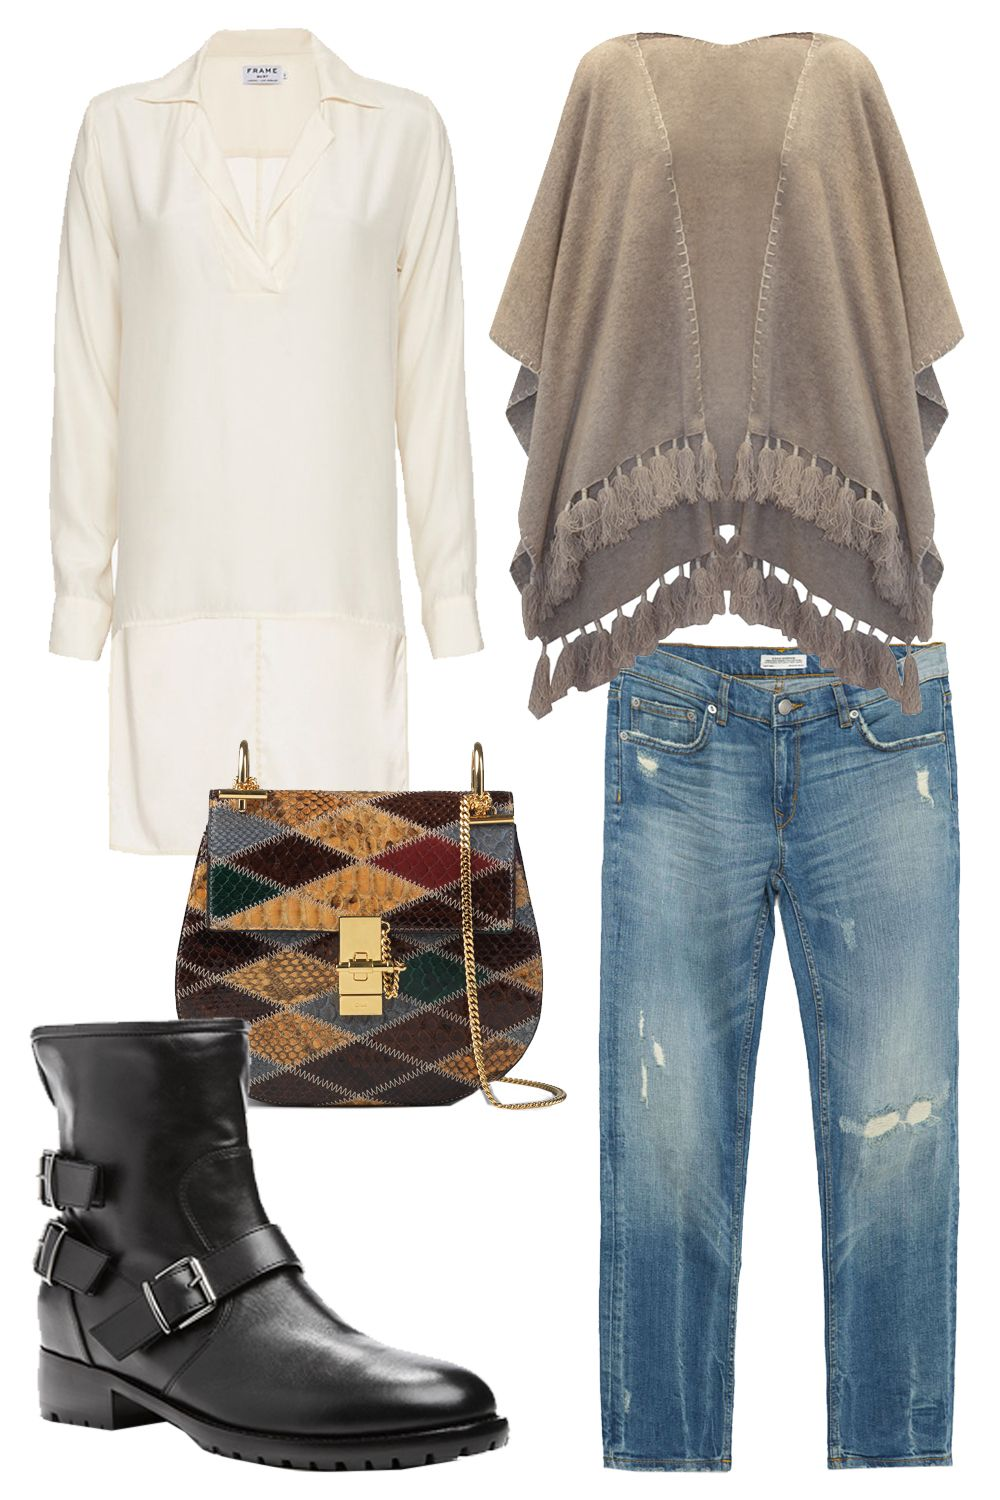 """<p>White + Warren Cashmere Two Way Tassel Poncho, $385; <a href=""""http://rstyle.me/n/bdupdnbc6jf"""">whiteandwarren.com</a></p><p>Frame Hi/Lo Silk Tunic, $248; <a href=""""http://rstyle.me/~6Ppn9"""">intermixonline.com</a></p><p>Chloe Drew Bag in Python Patchwork, $3,990; <a href=""""http://www.lyst.com/bags/chloe-patchwork-drew-bag/"""">lyst.com</a></p><p>Zara Mid-Rise Cigarette Jeans, $70; <a href=""""http://www.zara.com/us/en/woman/jeans/view-all/mid-rise-cigarette-jeans-c733918p3012551.html"""">zara.com</a></p><p>Giuseppe Zanotti Black Leather Side Buckled Moto Boot, $1,075; <a href=""""http://rstyle.me/n/6shafbc6jf"""">modaoperandi.com</a></p>"""